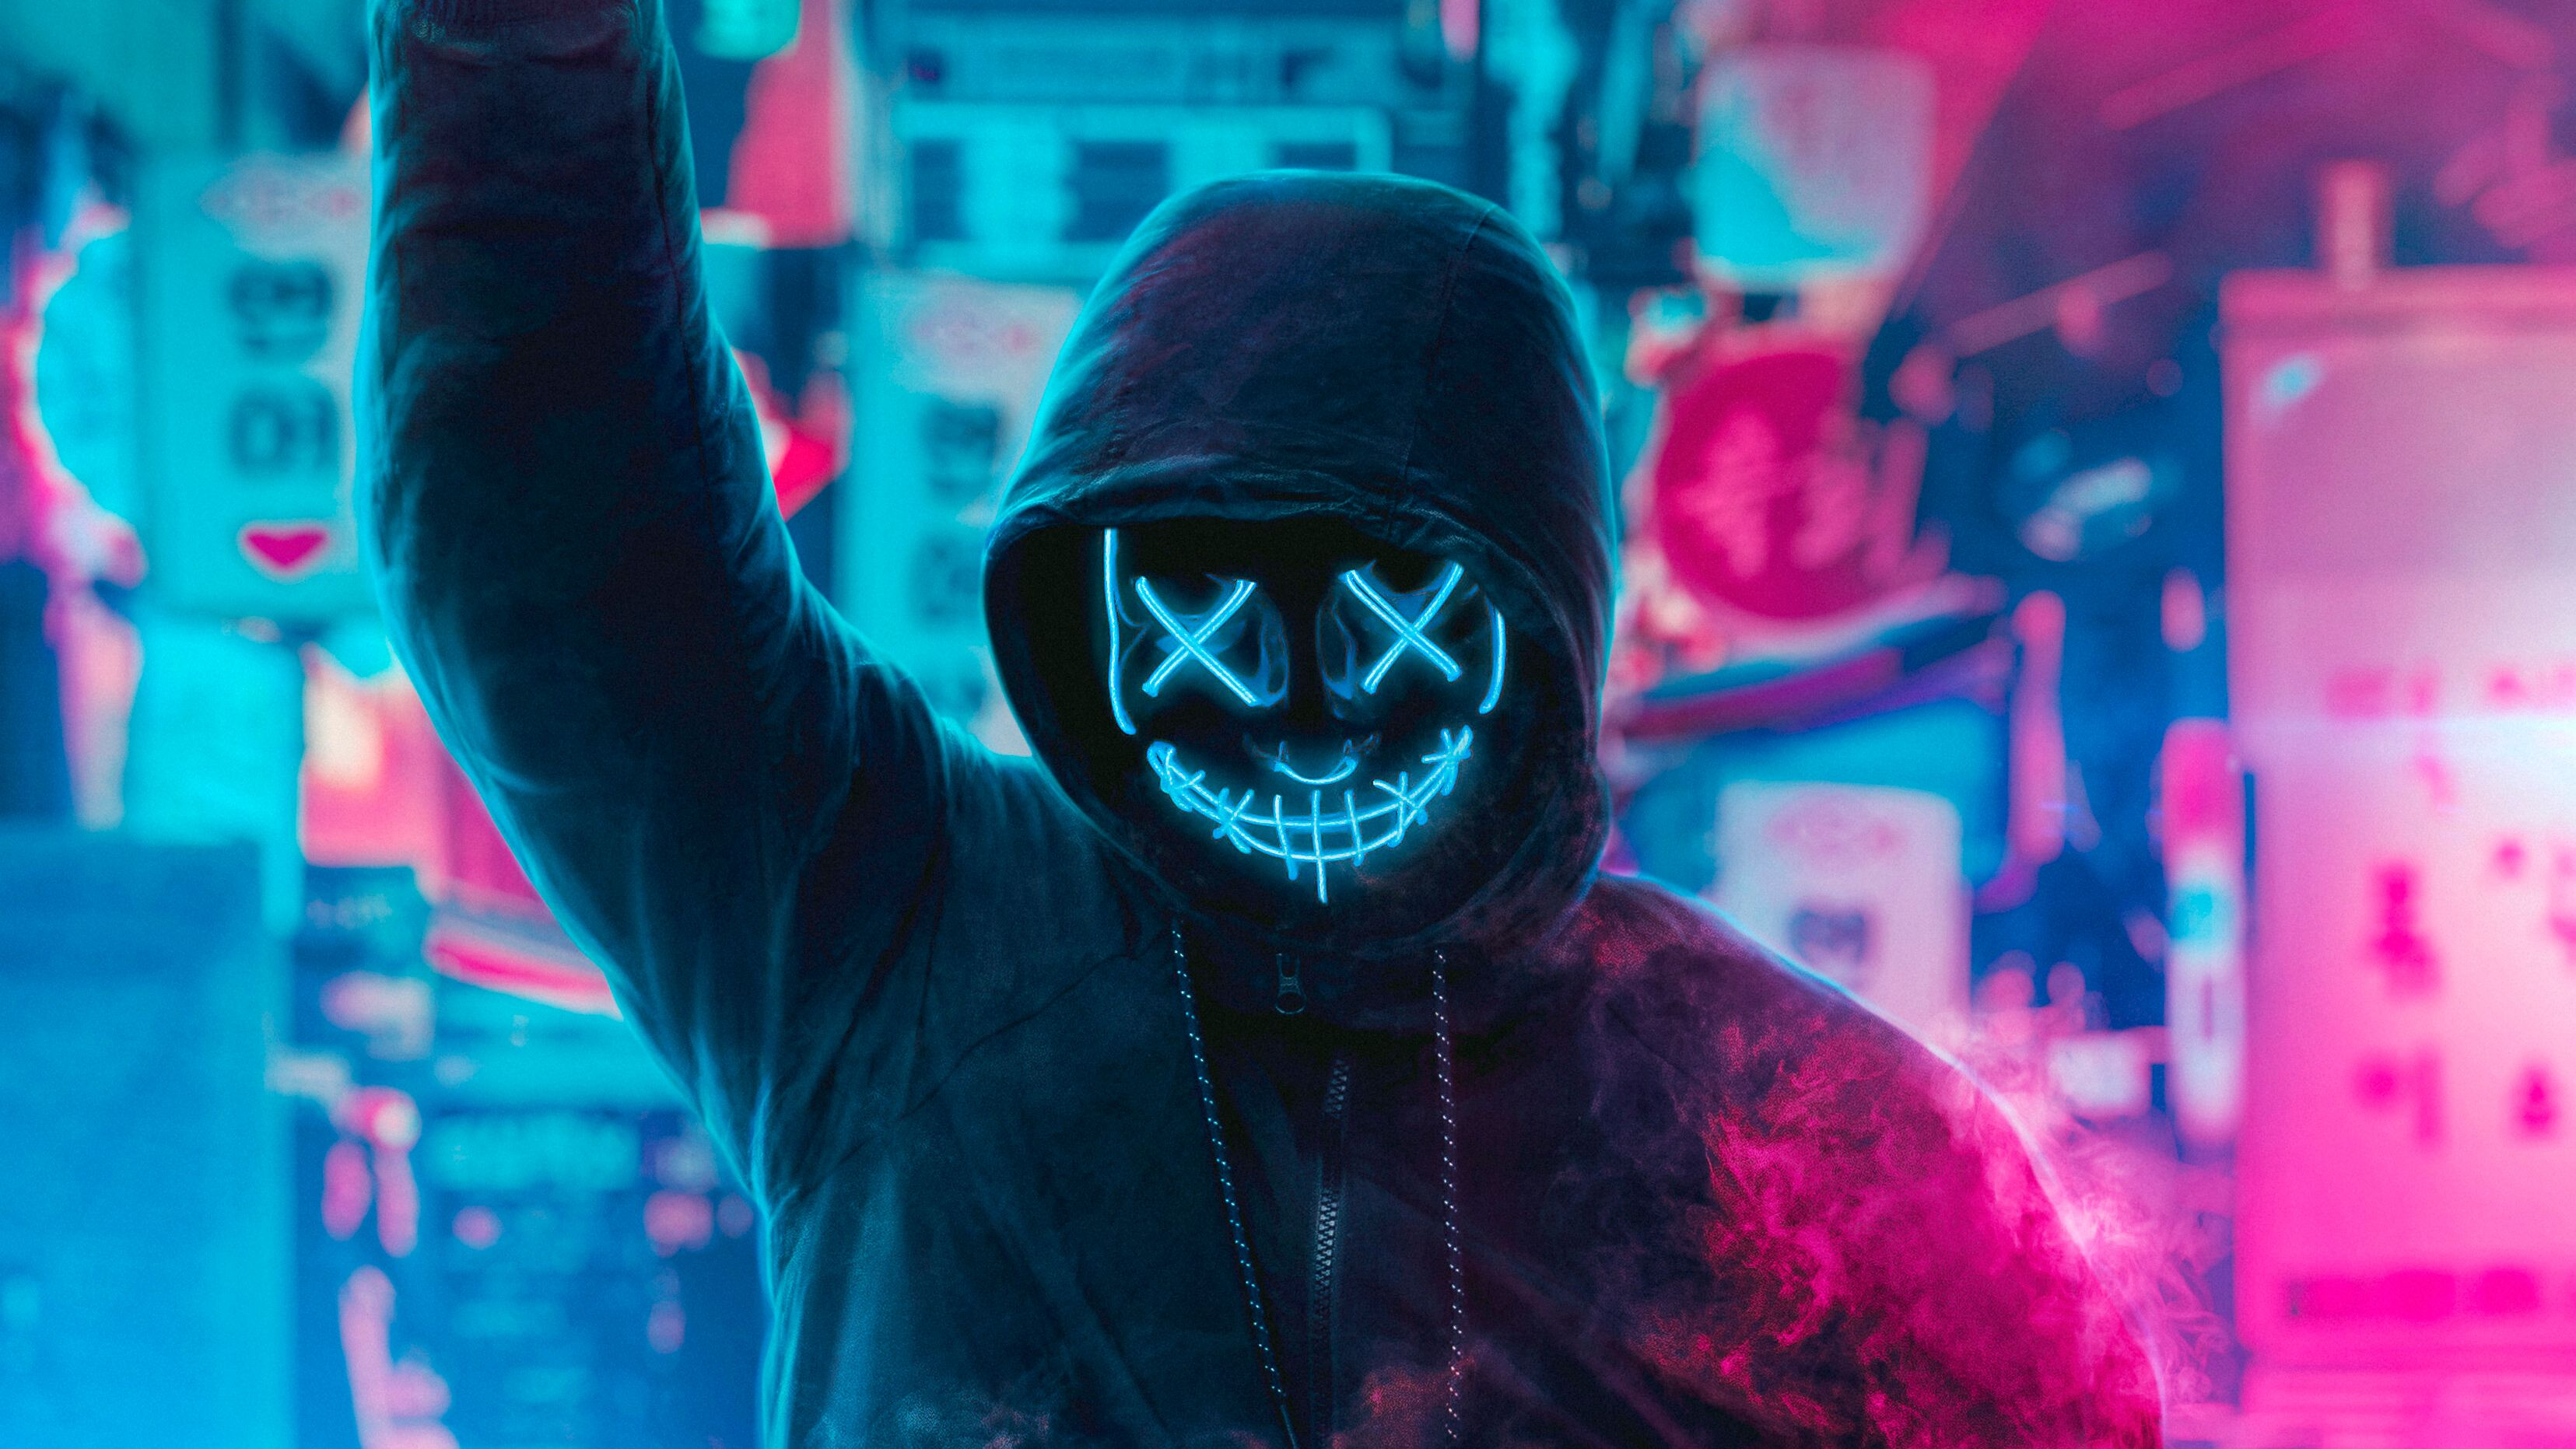 Neon Mask Wallpapers Top Free Neon Mask Backgrounds Wallpaperaccess